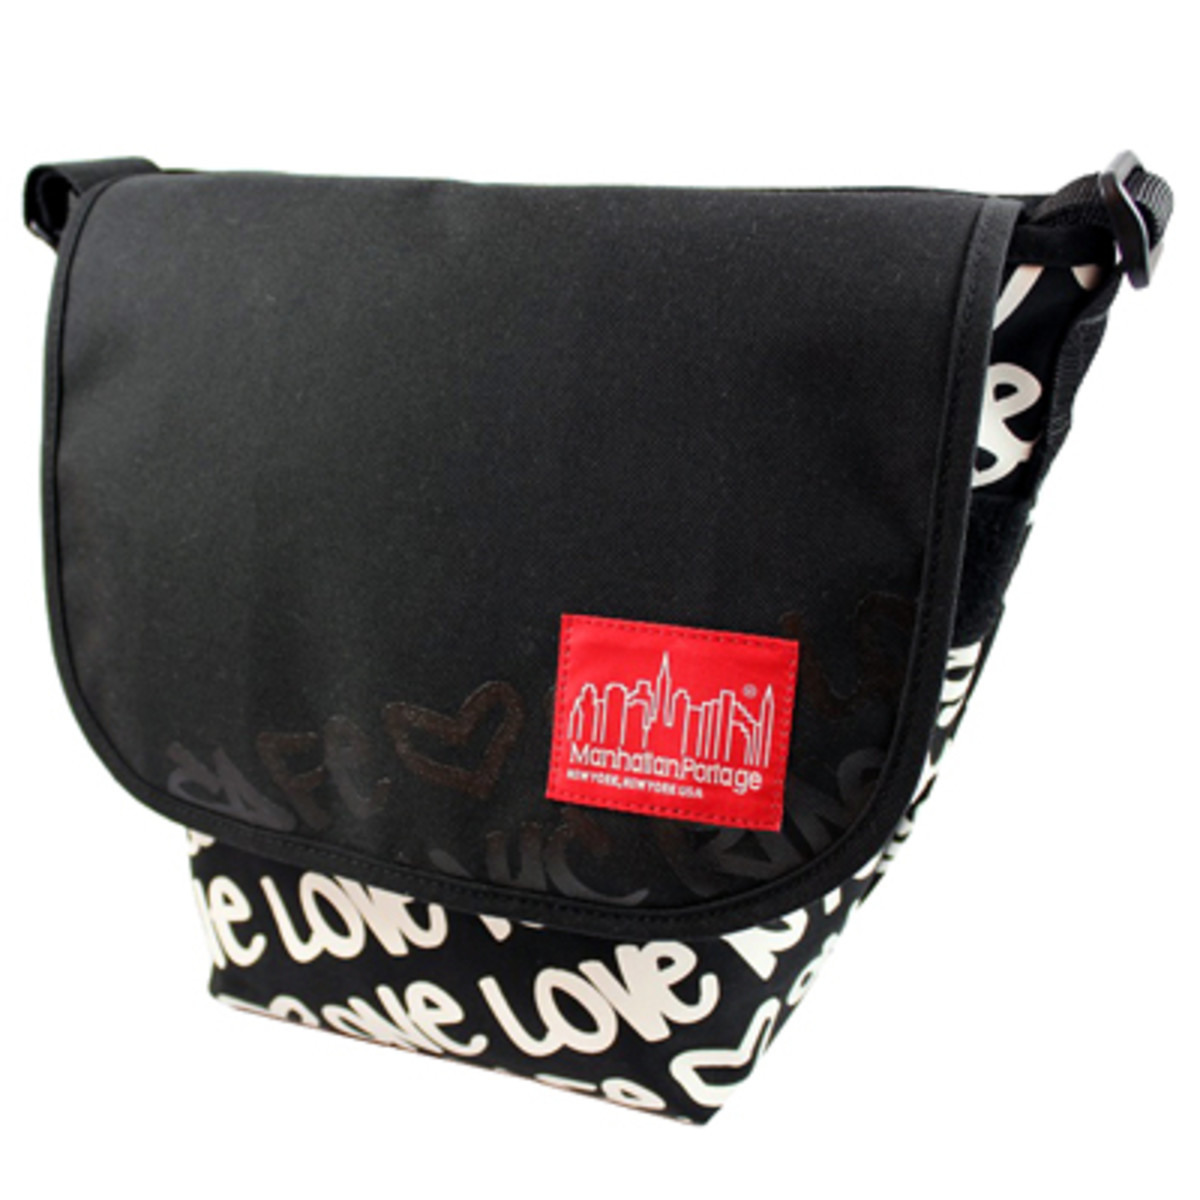 Graphic Message Casual Messenger Bag Large